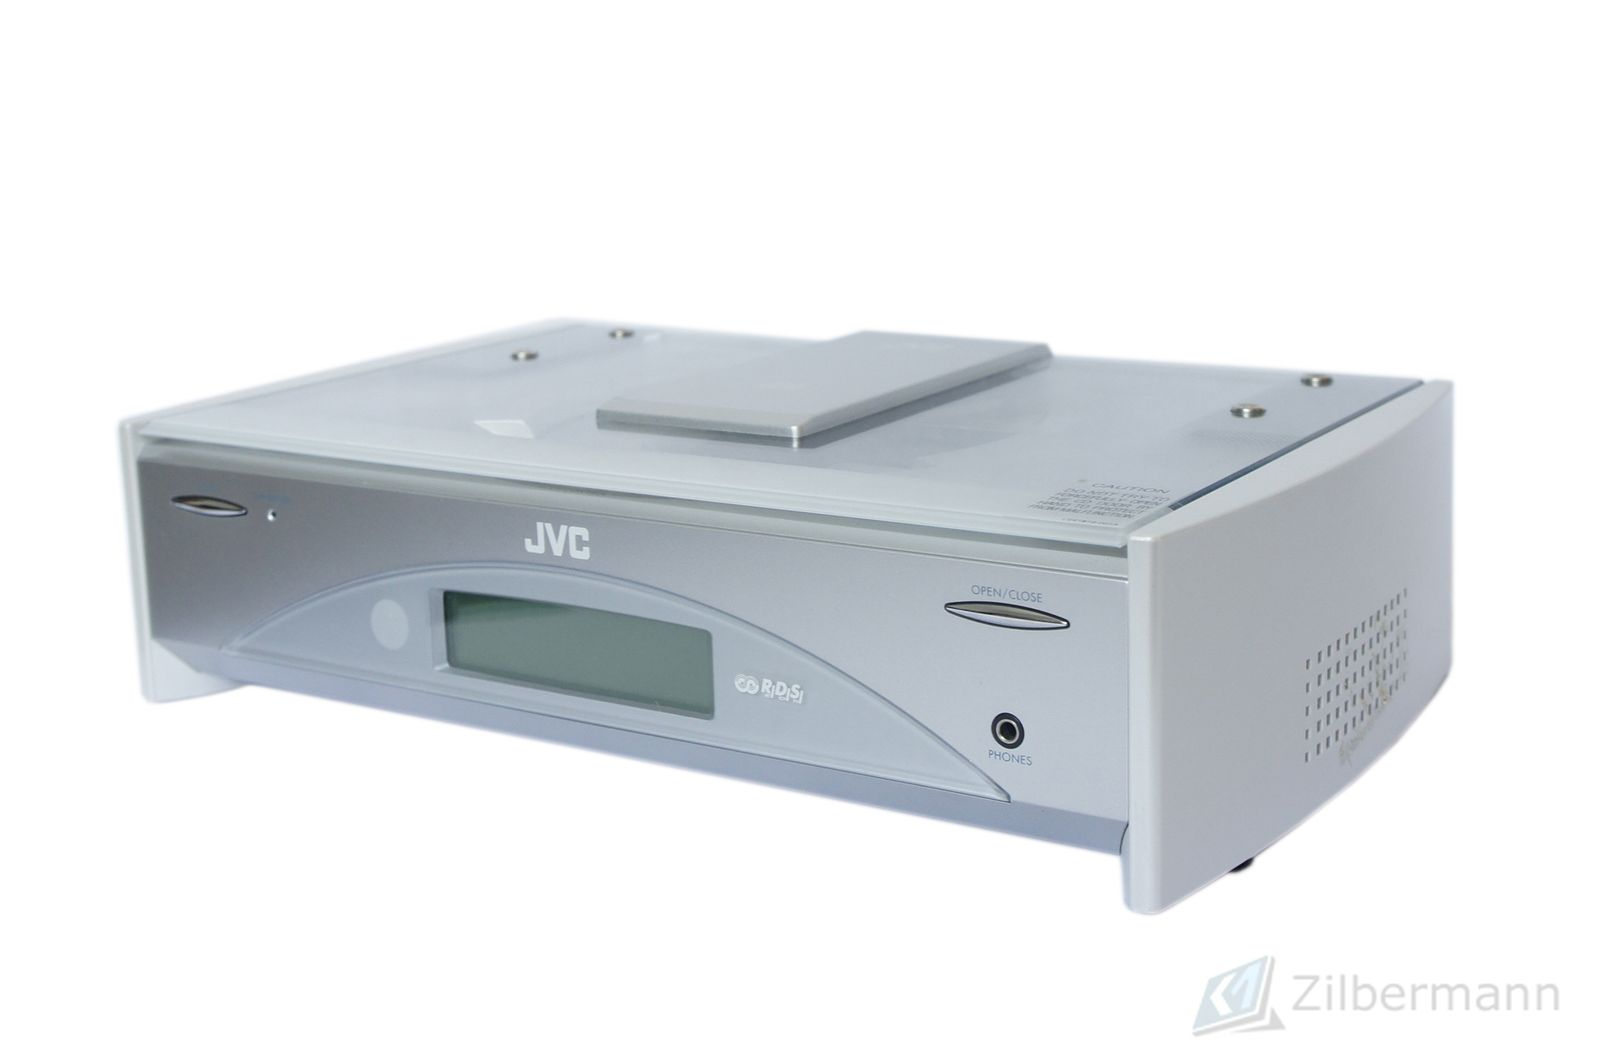 JVC_FS-SD5R_Compact_Component_High_End_HiFi_System_09